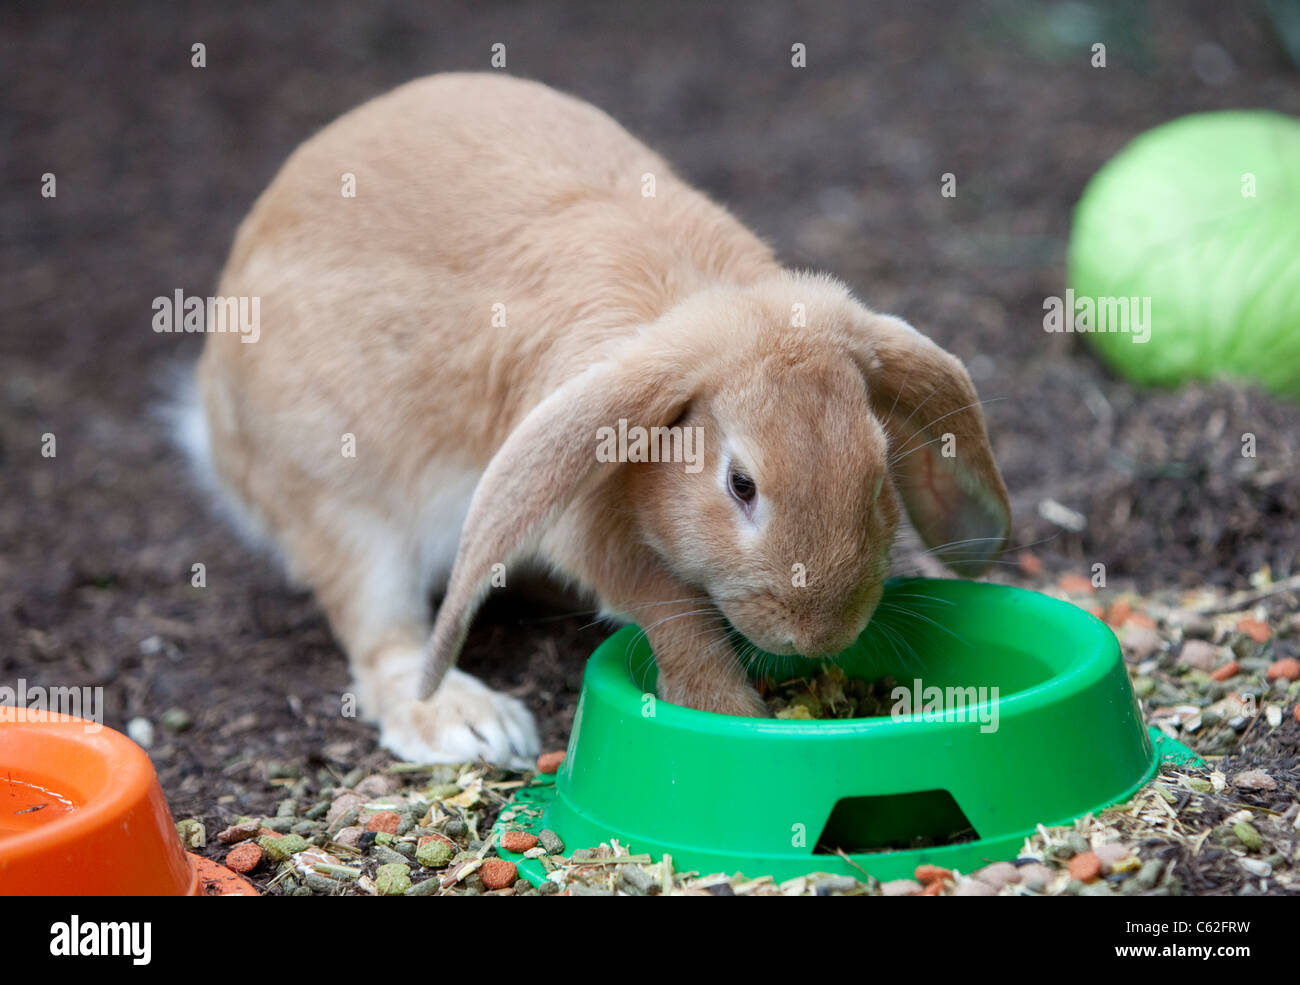 A giant lop-eared Rabbit eating food from a green bowl. - Stock Image